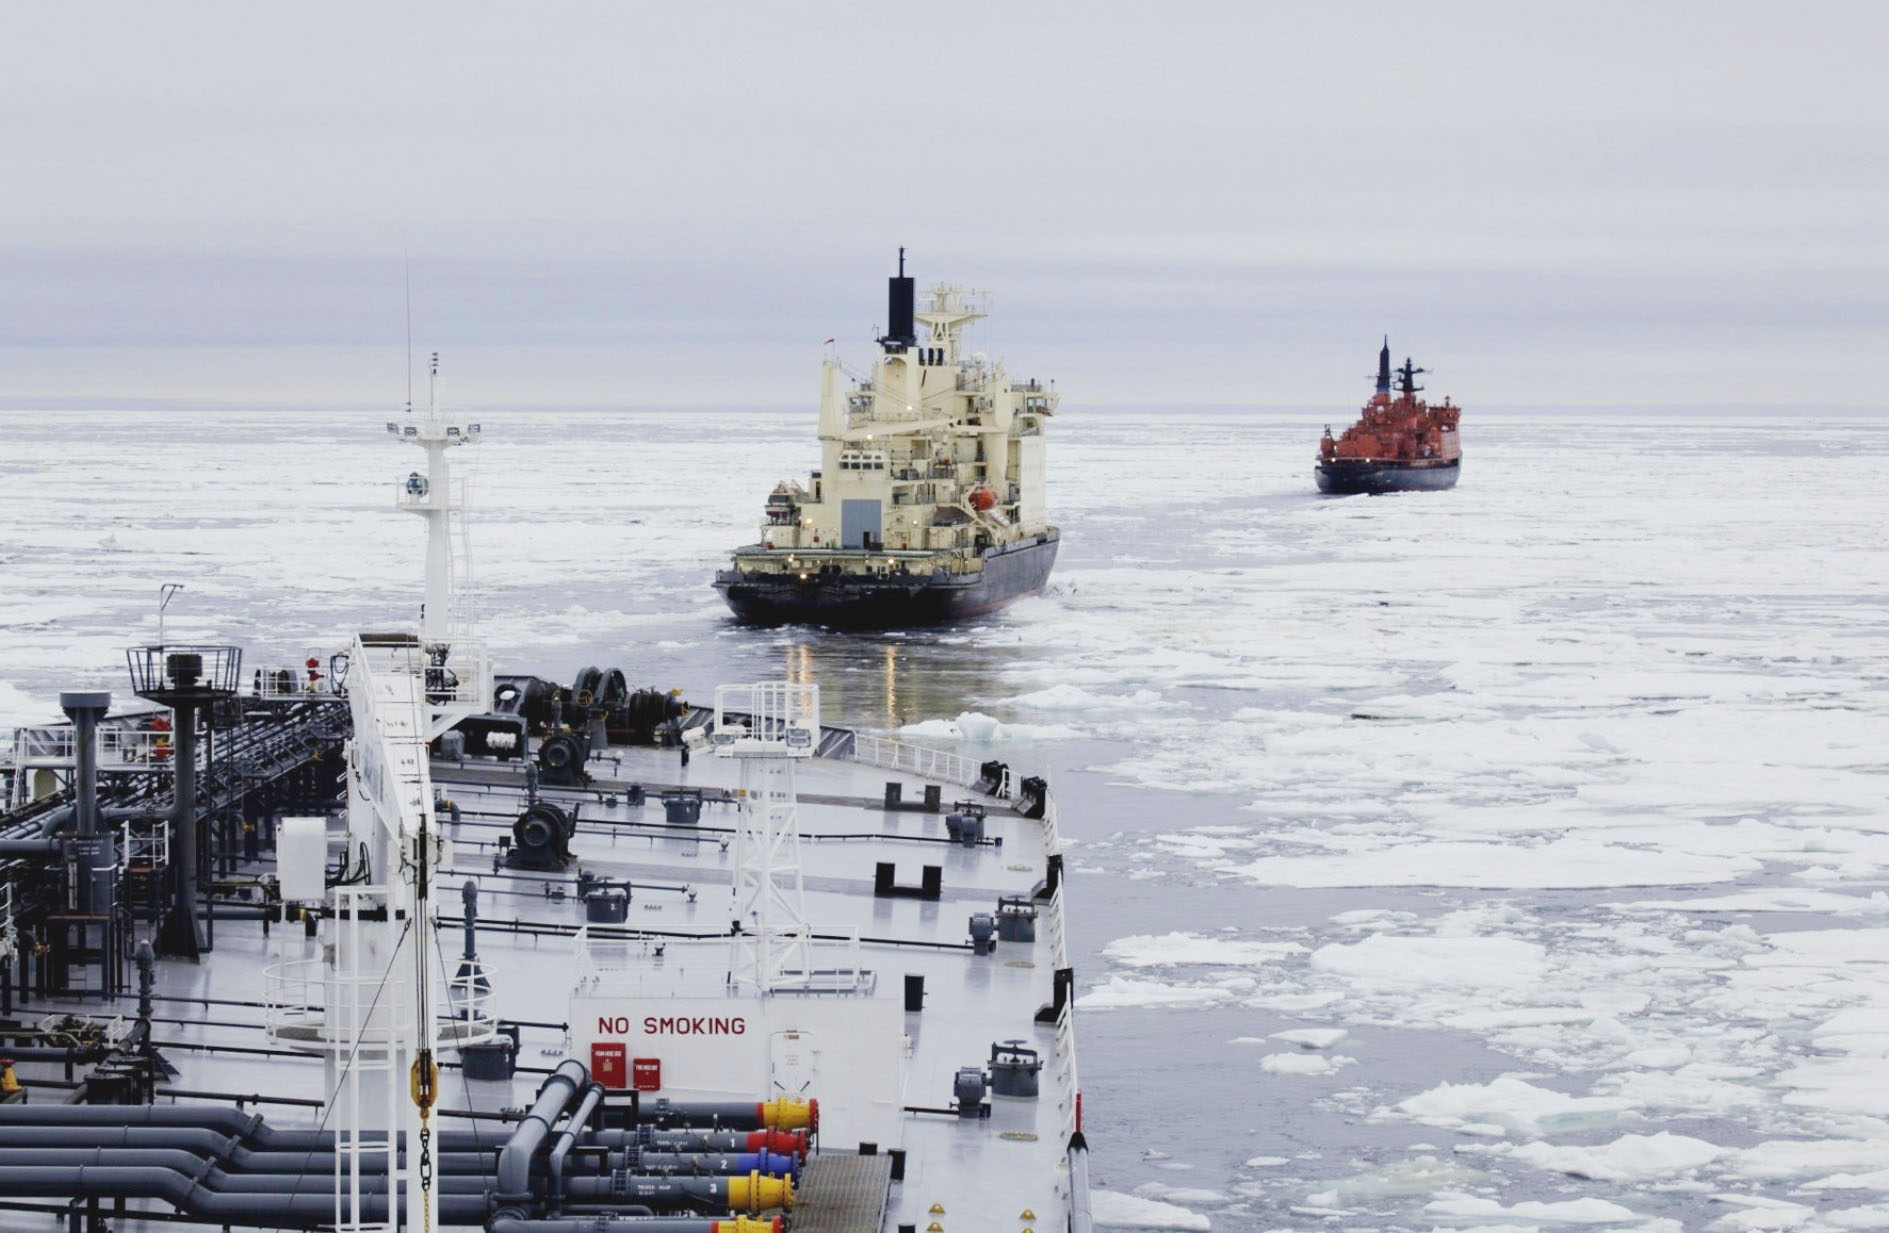 Climate change: Guided by two icebreakers, a crude oil tanker sails in the Arctic Ocean in August 2010. | KYODO